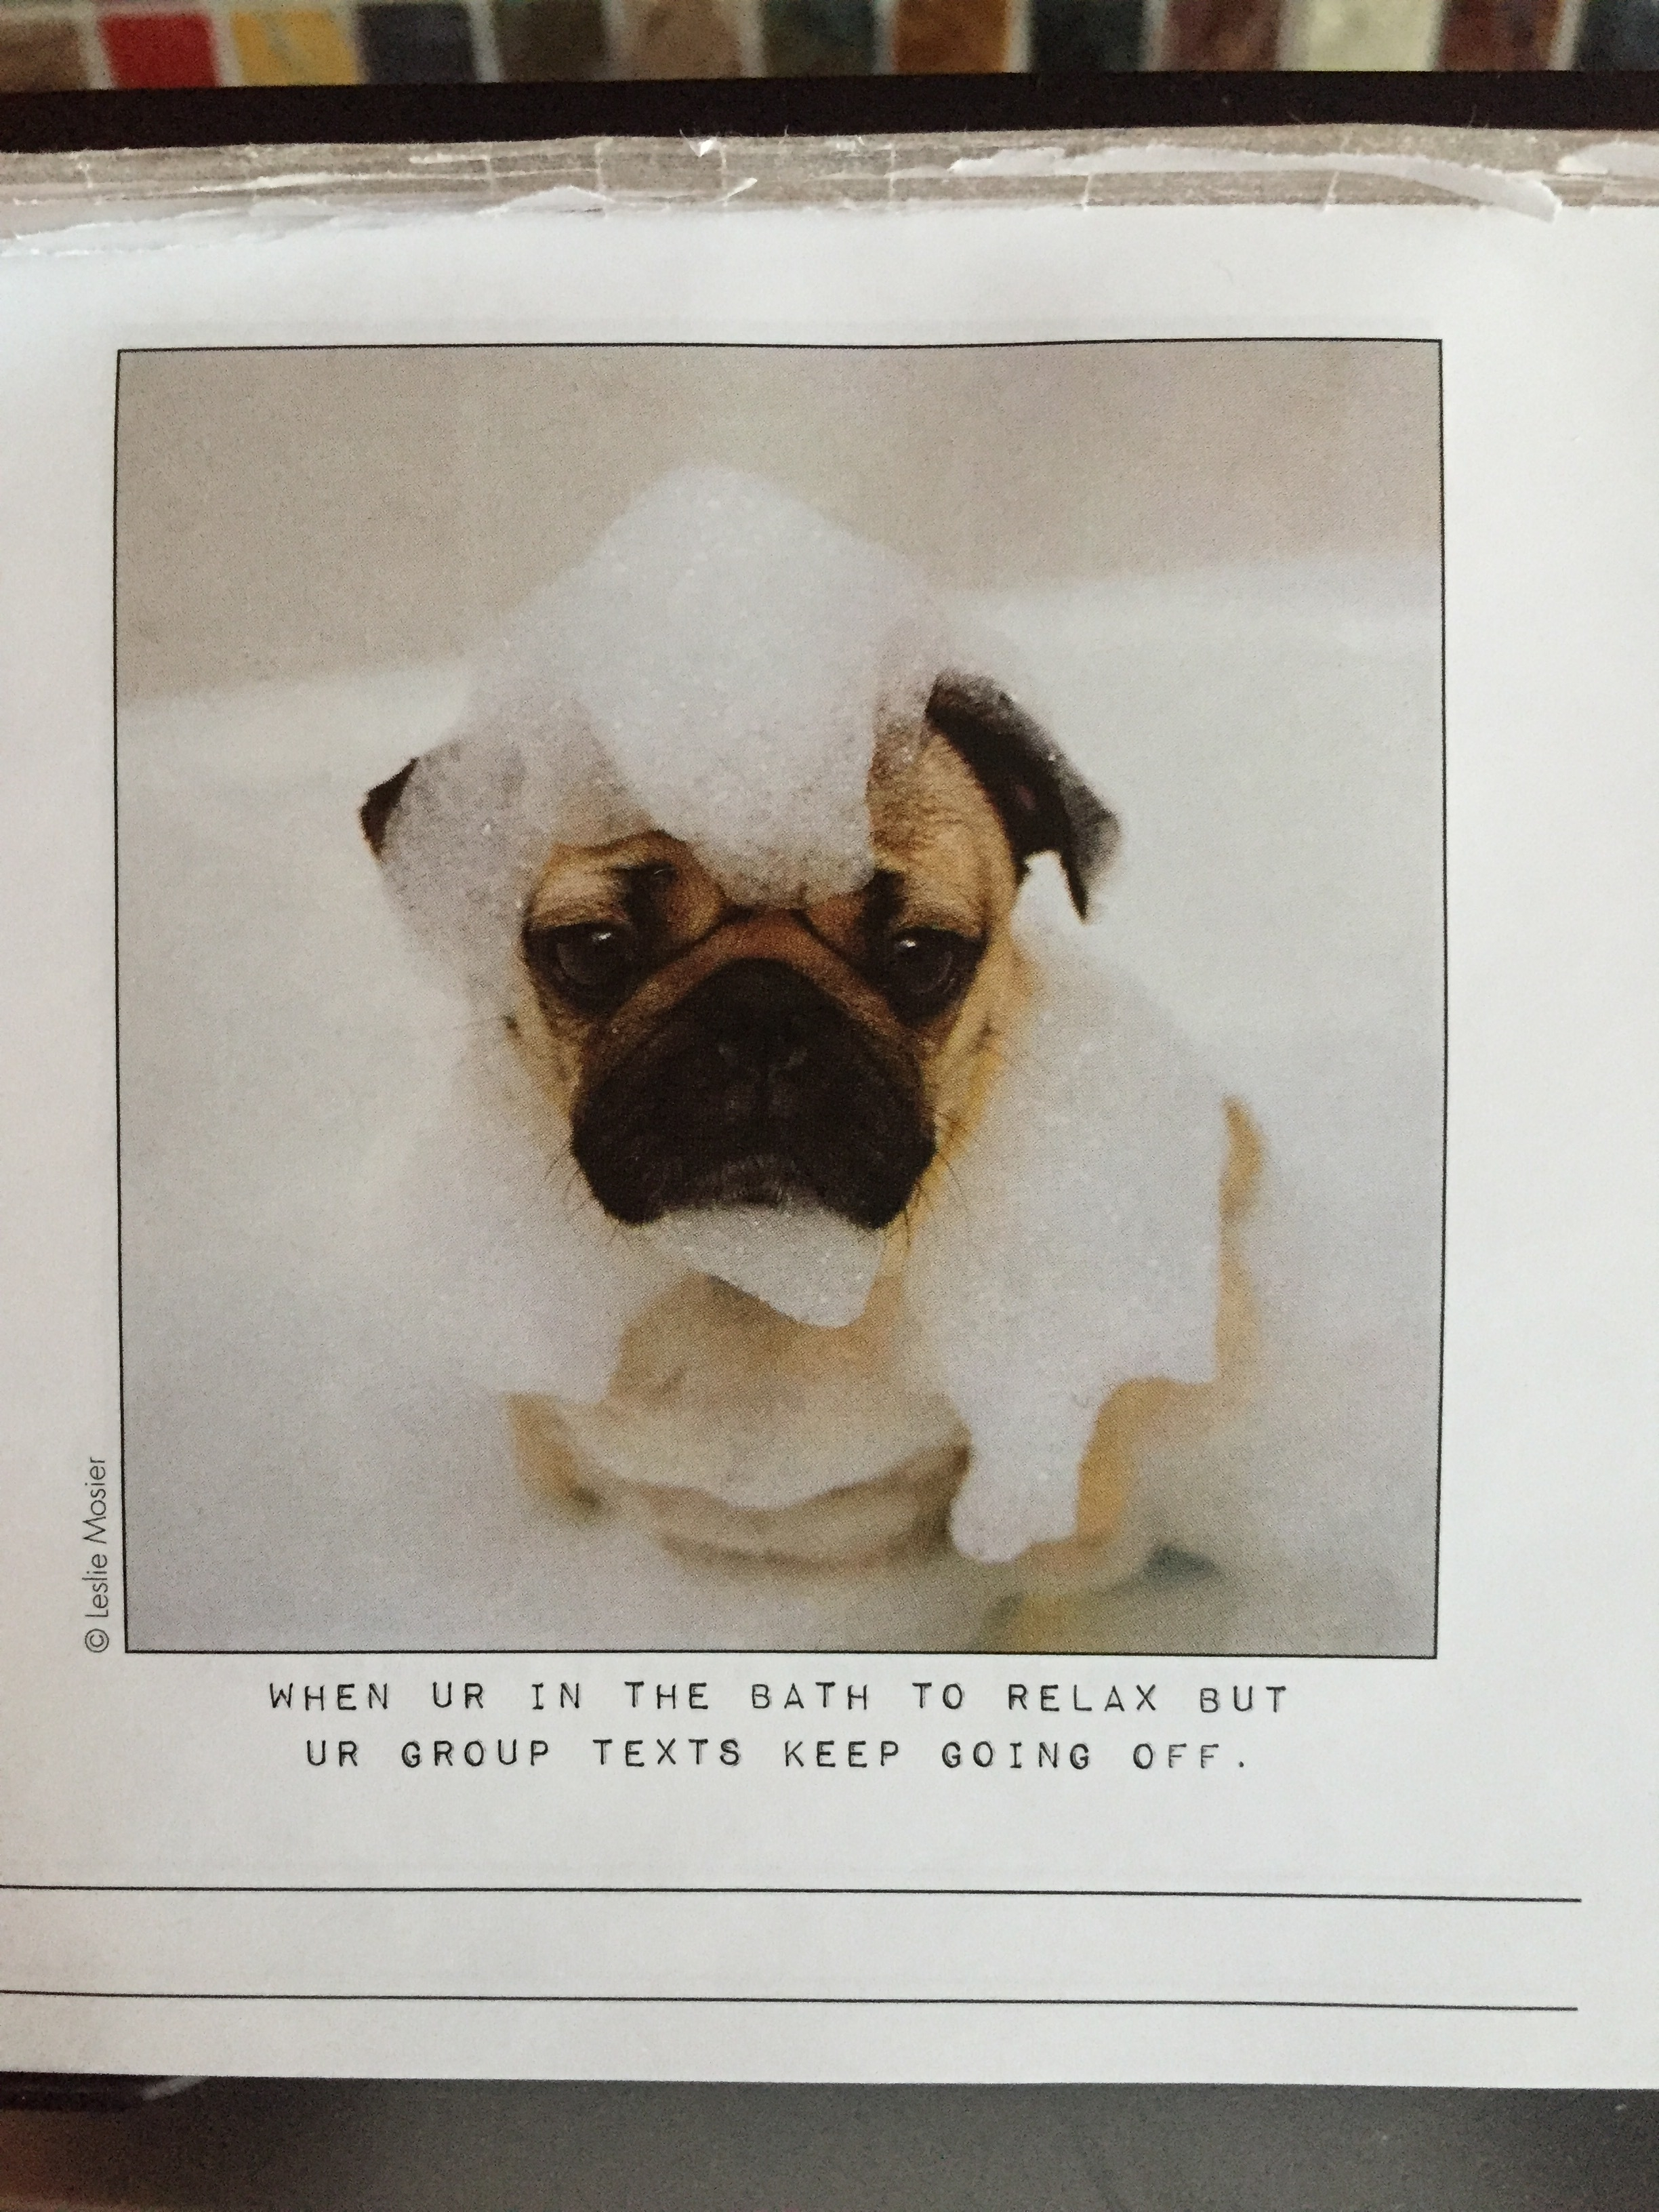 Last, but certainly not least....I bring you, the  Doug The Pug daily calendar . I put this in my husband's stocking at Christmas since he's obsessed with pugs (he's never getting one in real life, no matter how much he begs) and specifically loooves  Doug The Pug on Instagram . I really intended for him to take it to work, but he put it in the kitchen atop the microwave, and I admit that I am often the first one to flip the page and see what Doug is up to. Always, always, always makes me smile.